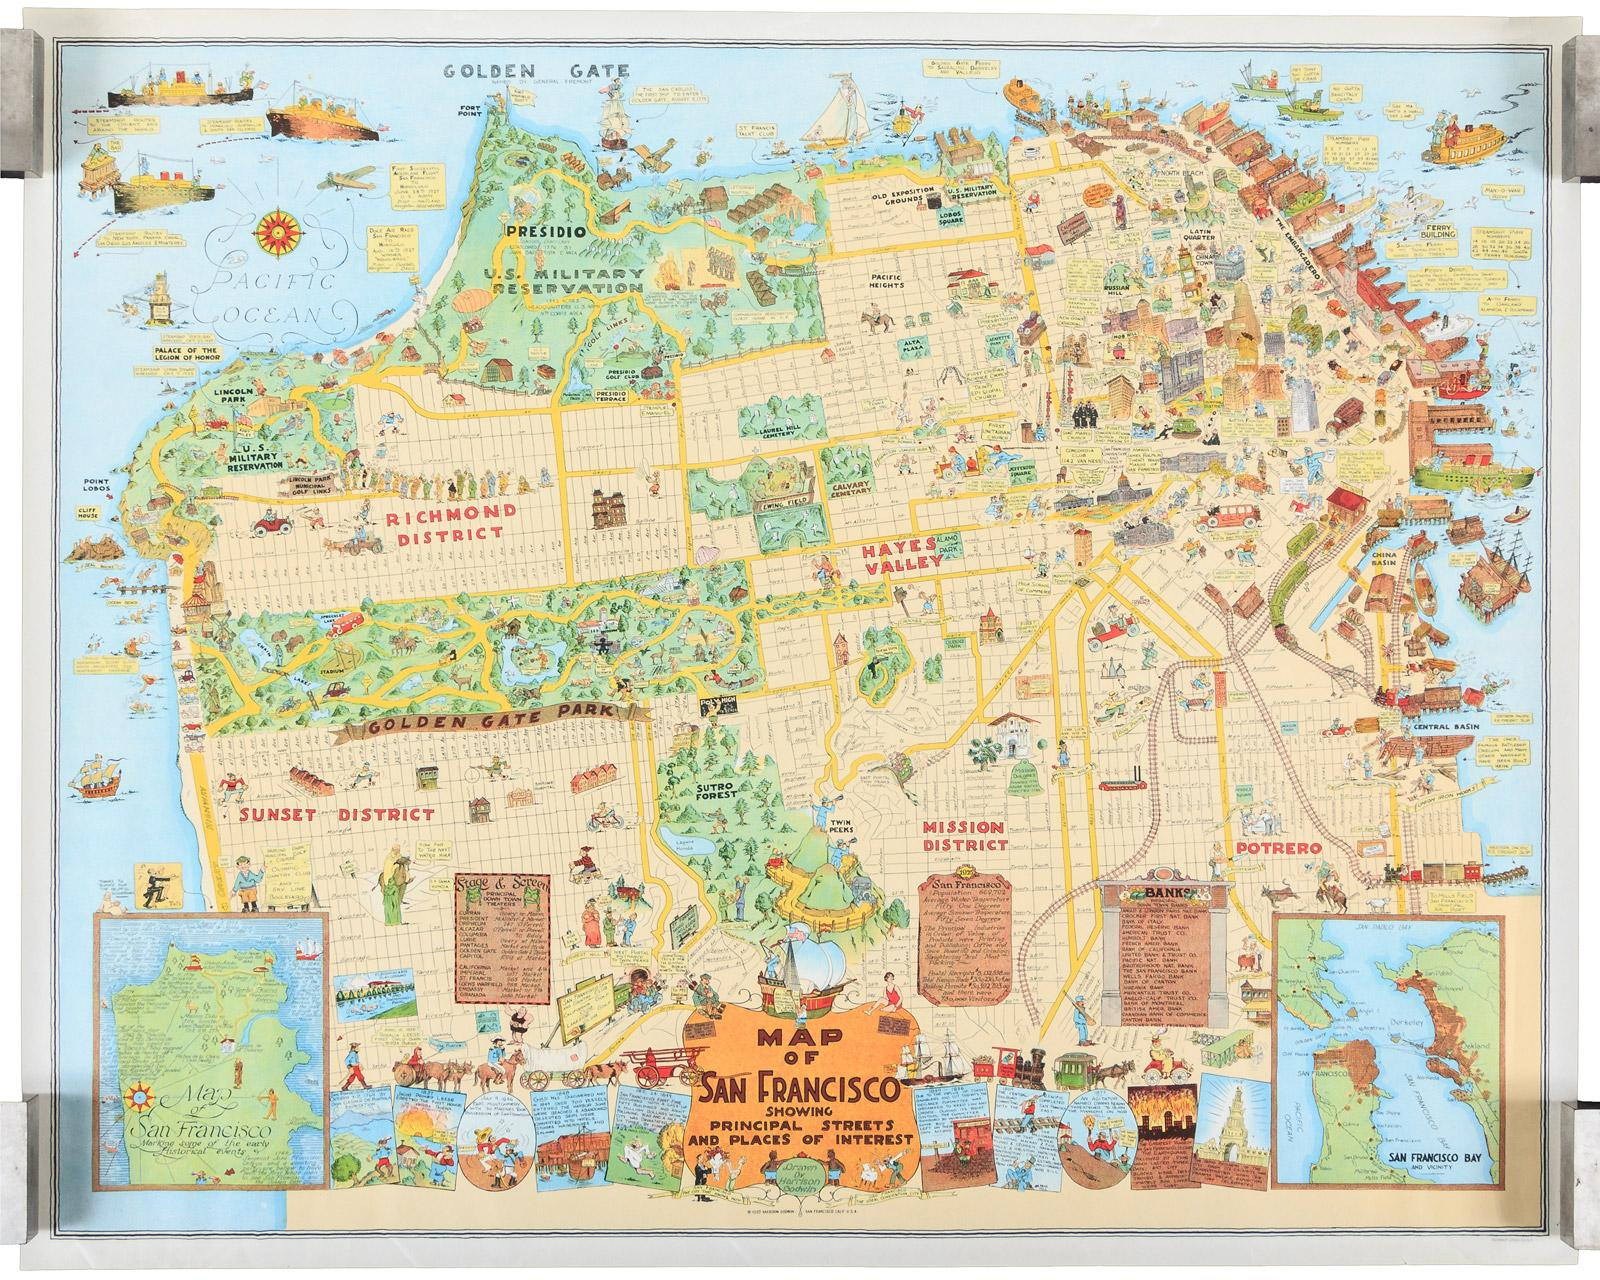 Map of San Francisco Showing Prinl Streets and Places of ... San Francisco Tourist Map on hyannis tourist map, napa tourist map, long beach tourist map, nuevo vallarta tourist map, ketchikan alaska tourist map, boise tourist map, otaru tourist map, malmo tourist map, graz tourist map, lausanne tourist map, fort worth tourist map, tainan tourist map, traverse city tourist map, wiesbaden tourist map, sarasota tourist map, ft. lauderdale tourist map, pasadena tourist map, charlotte tourist map, santa cruz tourist map, pacific northwest tourist map,